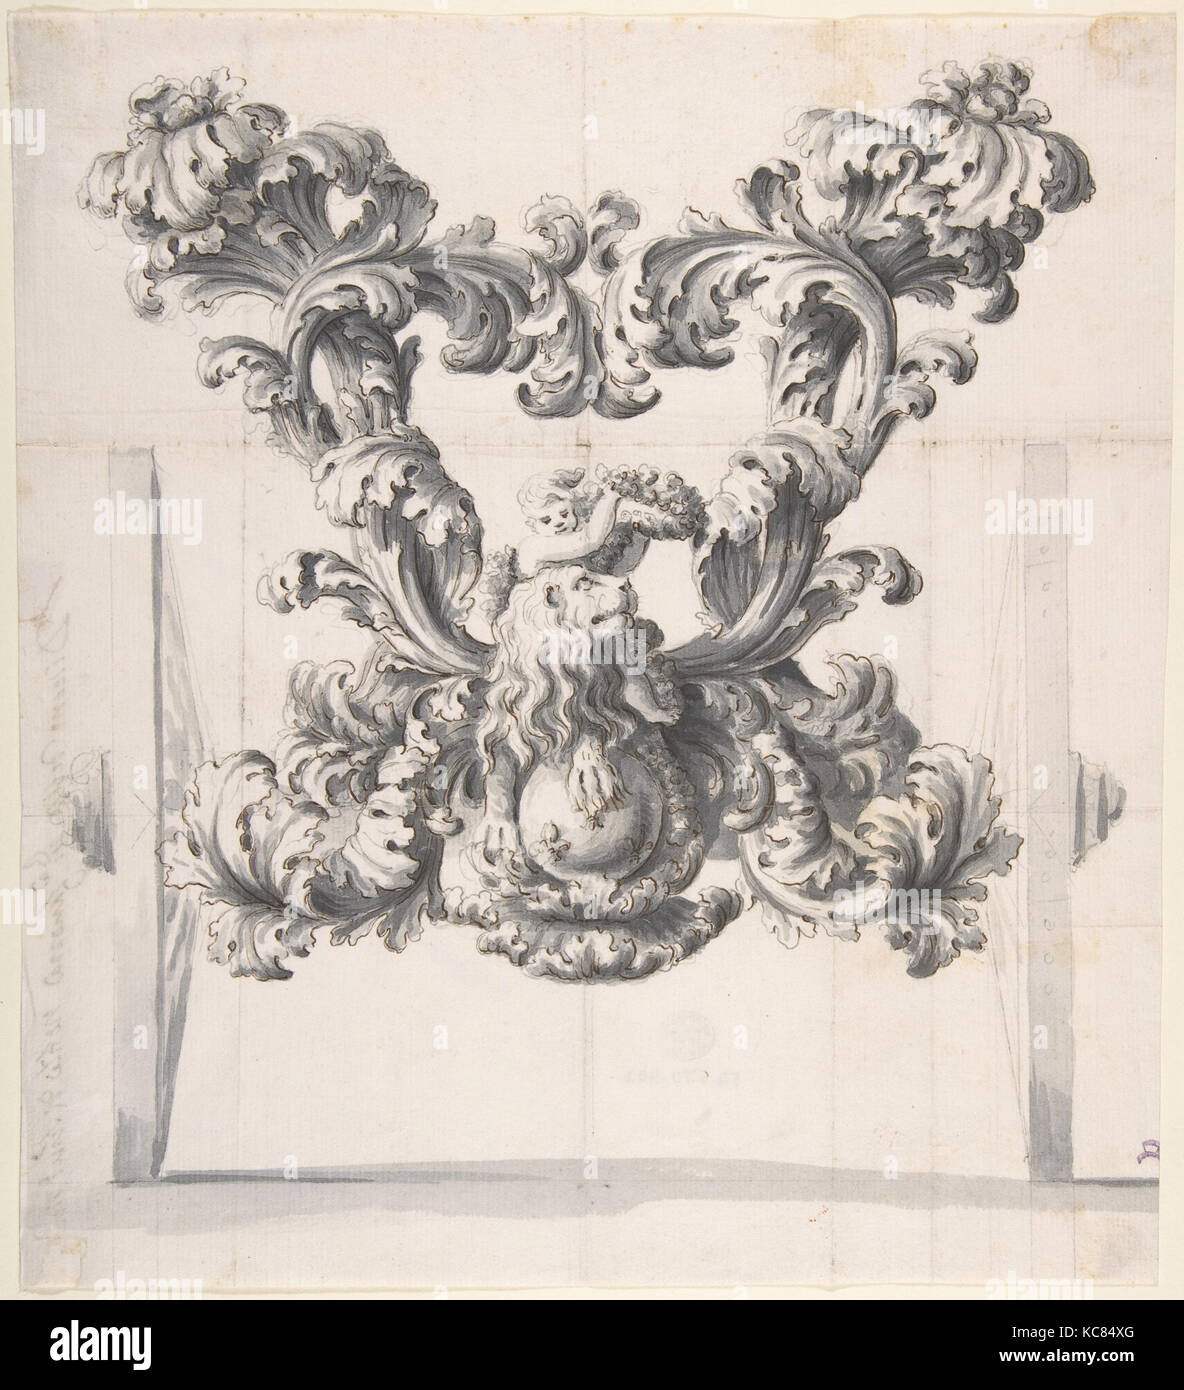 Rear View of an Elaborate Design for a Carriage with Acanthus Leaves and a Putto and Lion on top of a Ball - Stock Image